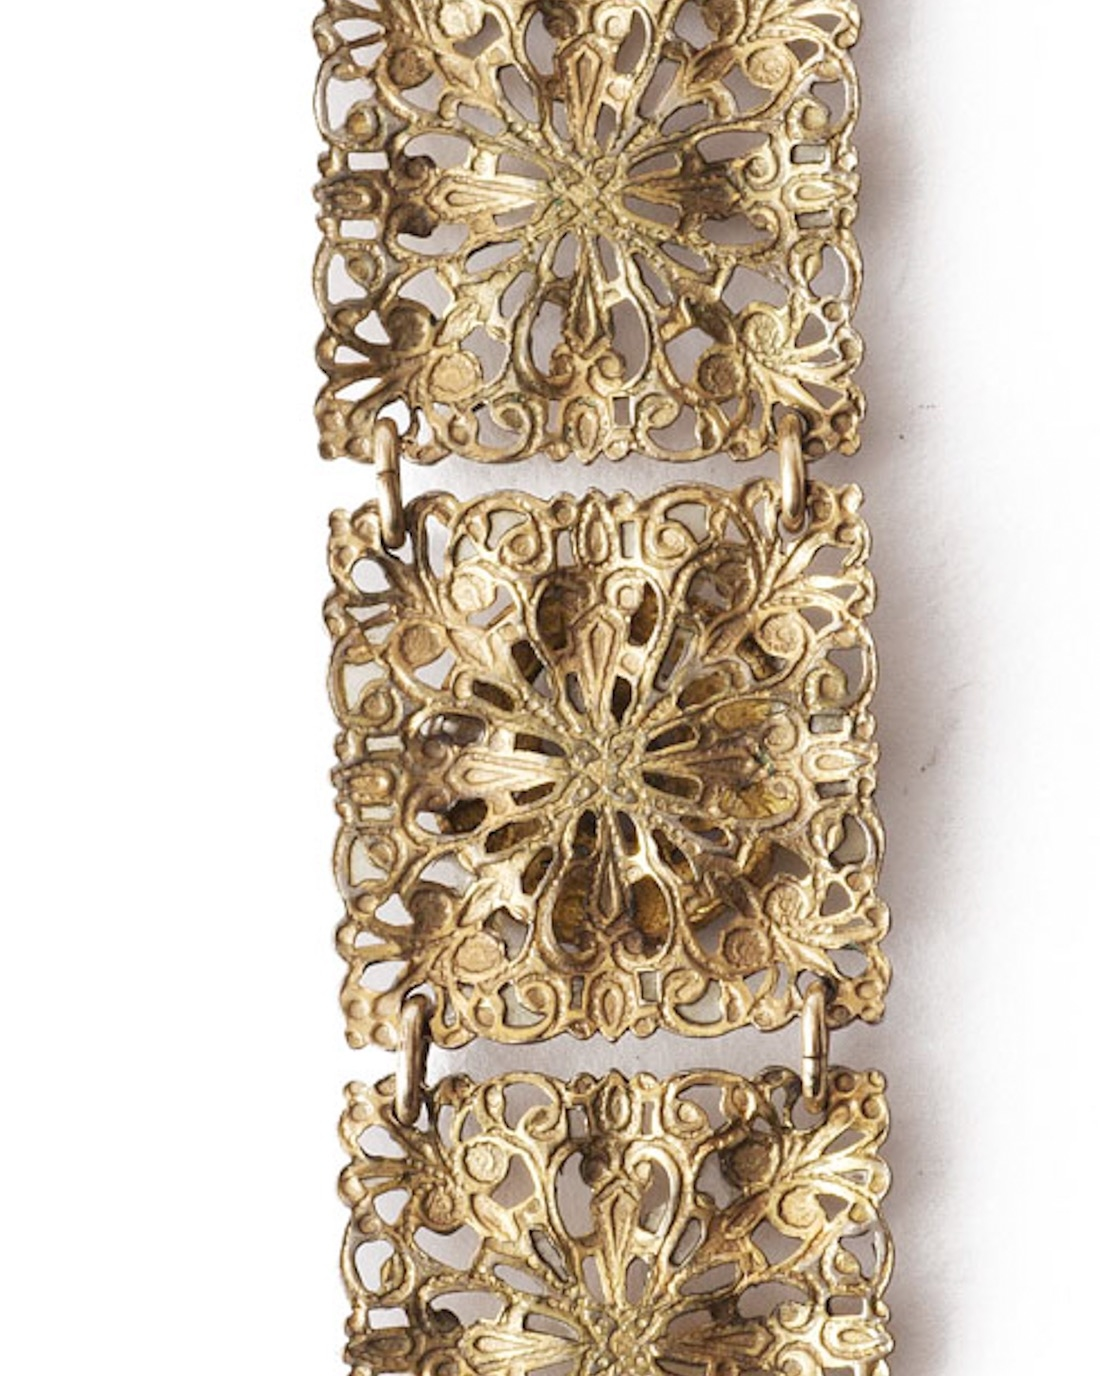 Art Nouveau Brass Filigree Enamel Linked Bracelet, circa early 1900's